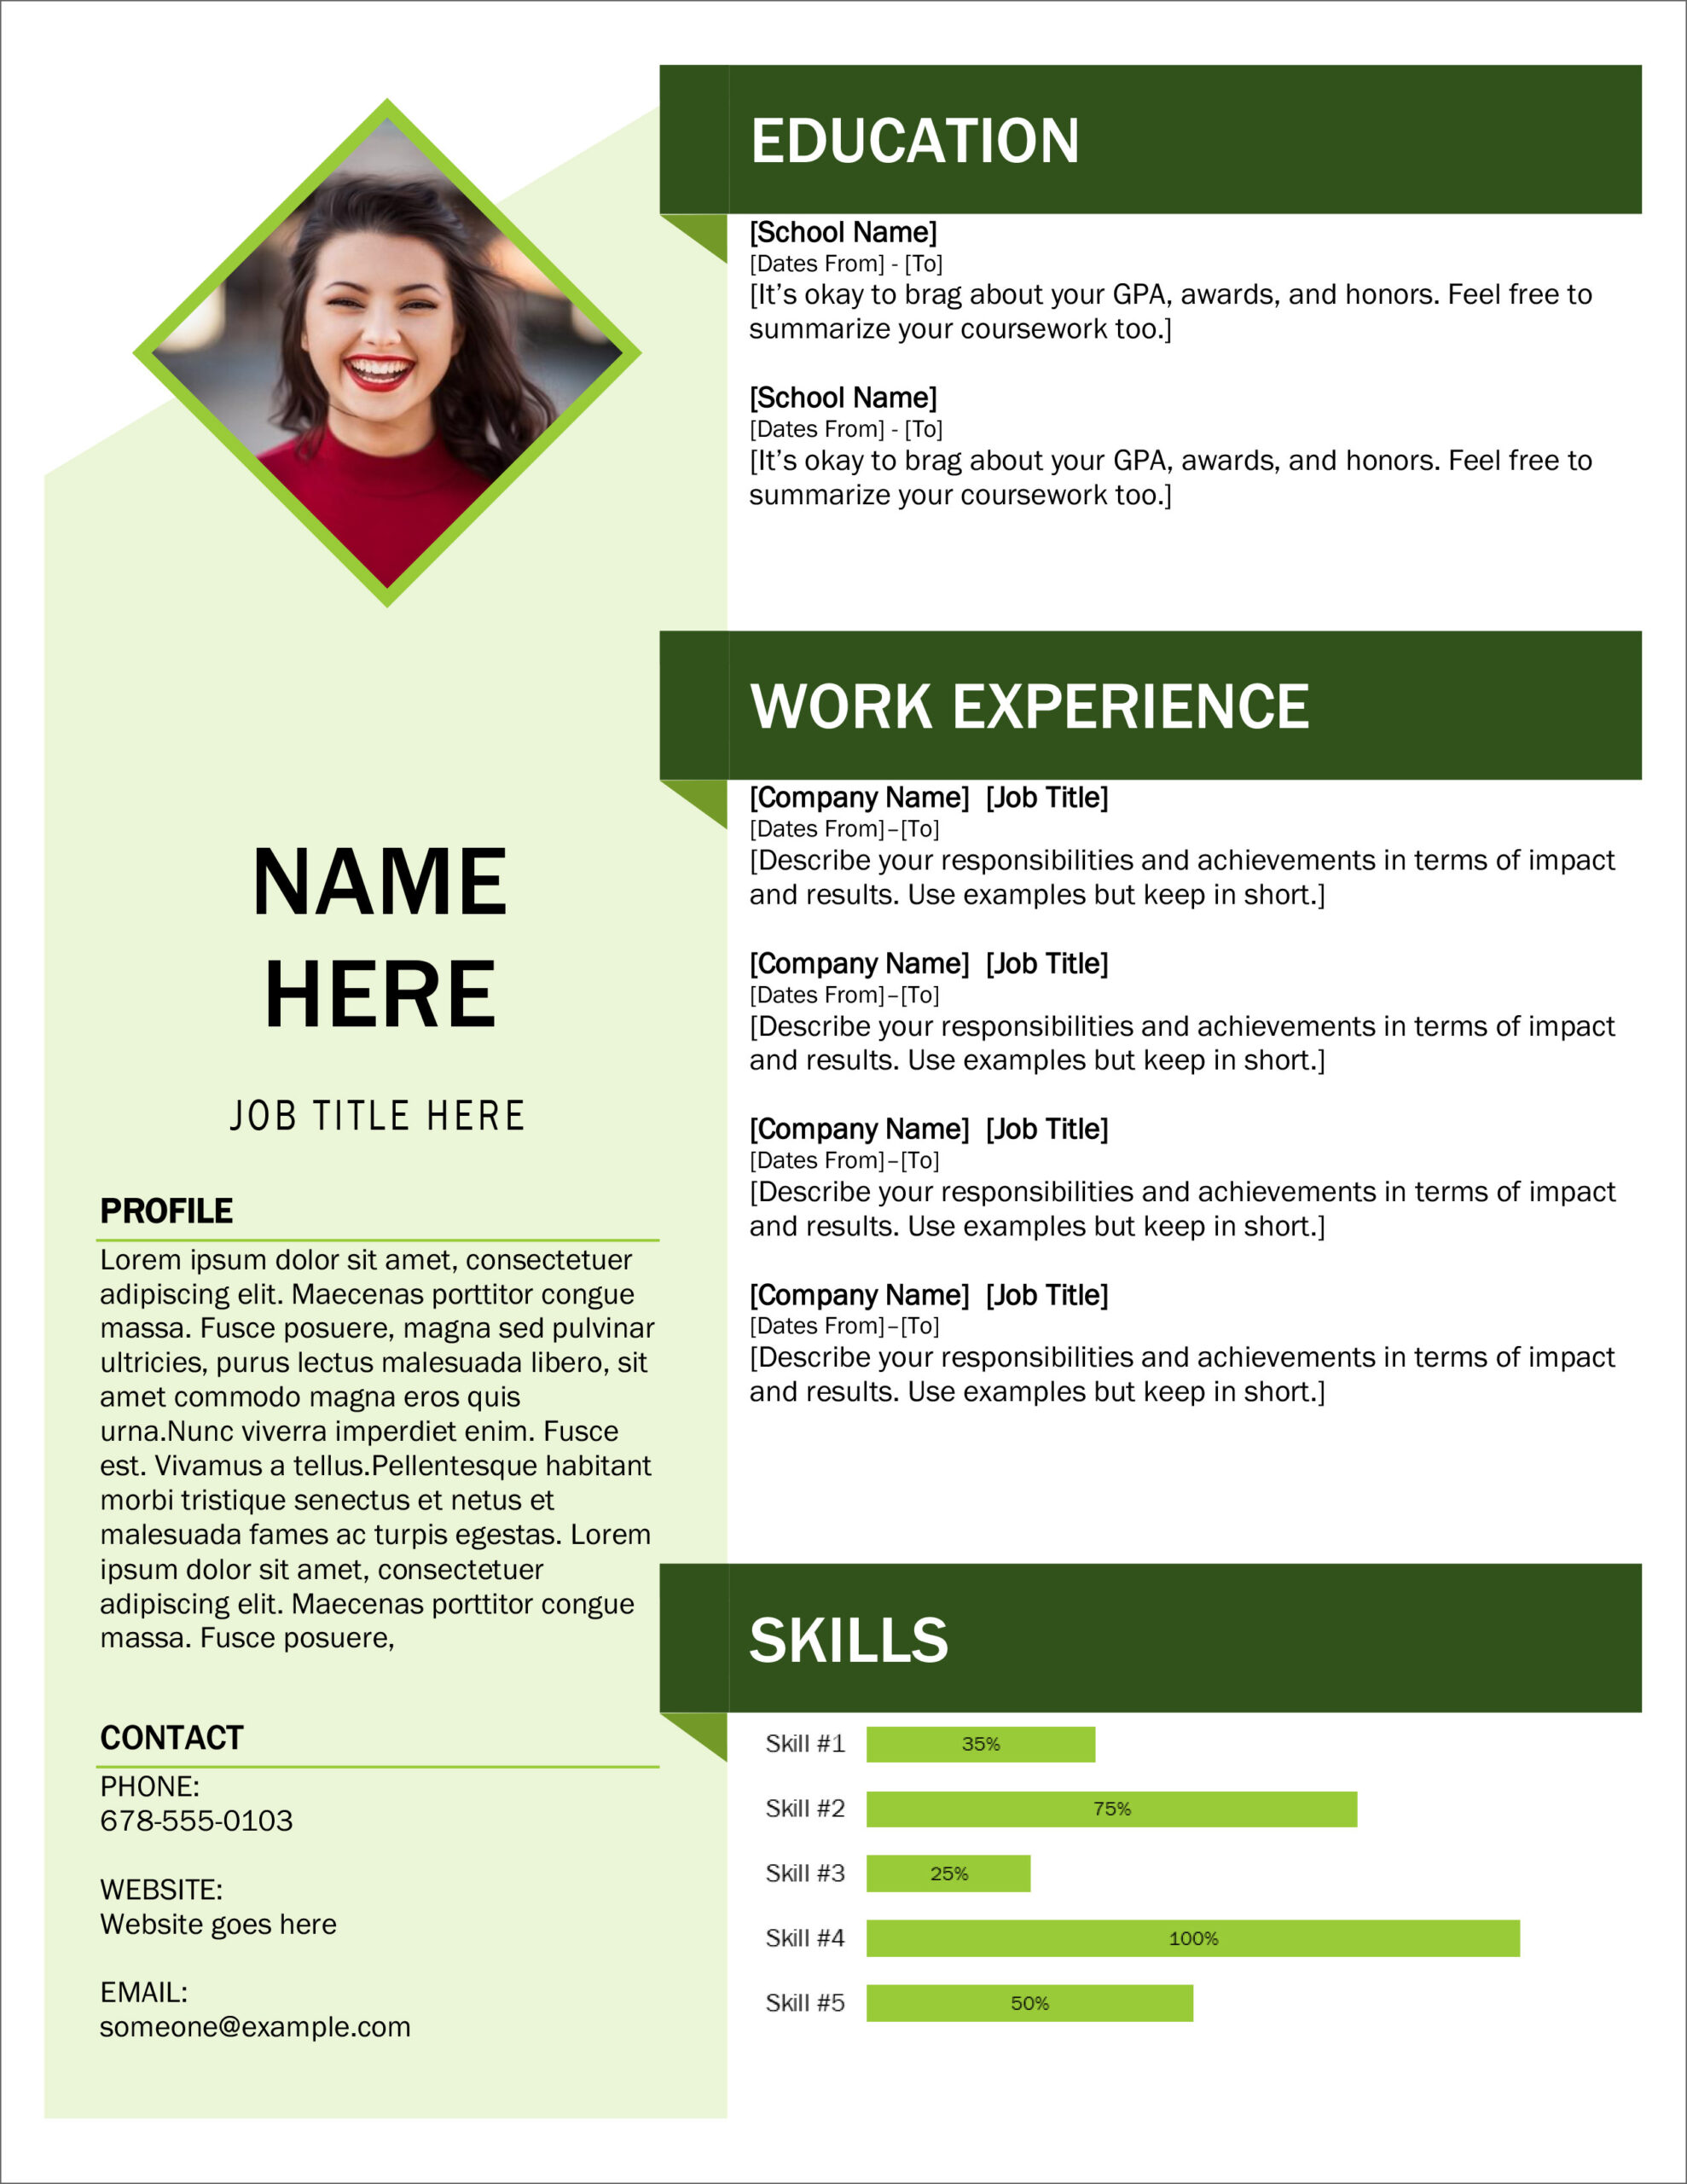 free modern resume cv templates minimalist simple clean design attractive microsoft Resume Attractive Resume Templates Free Download